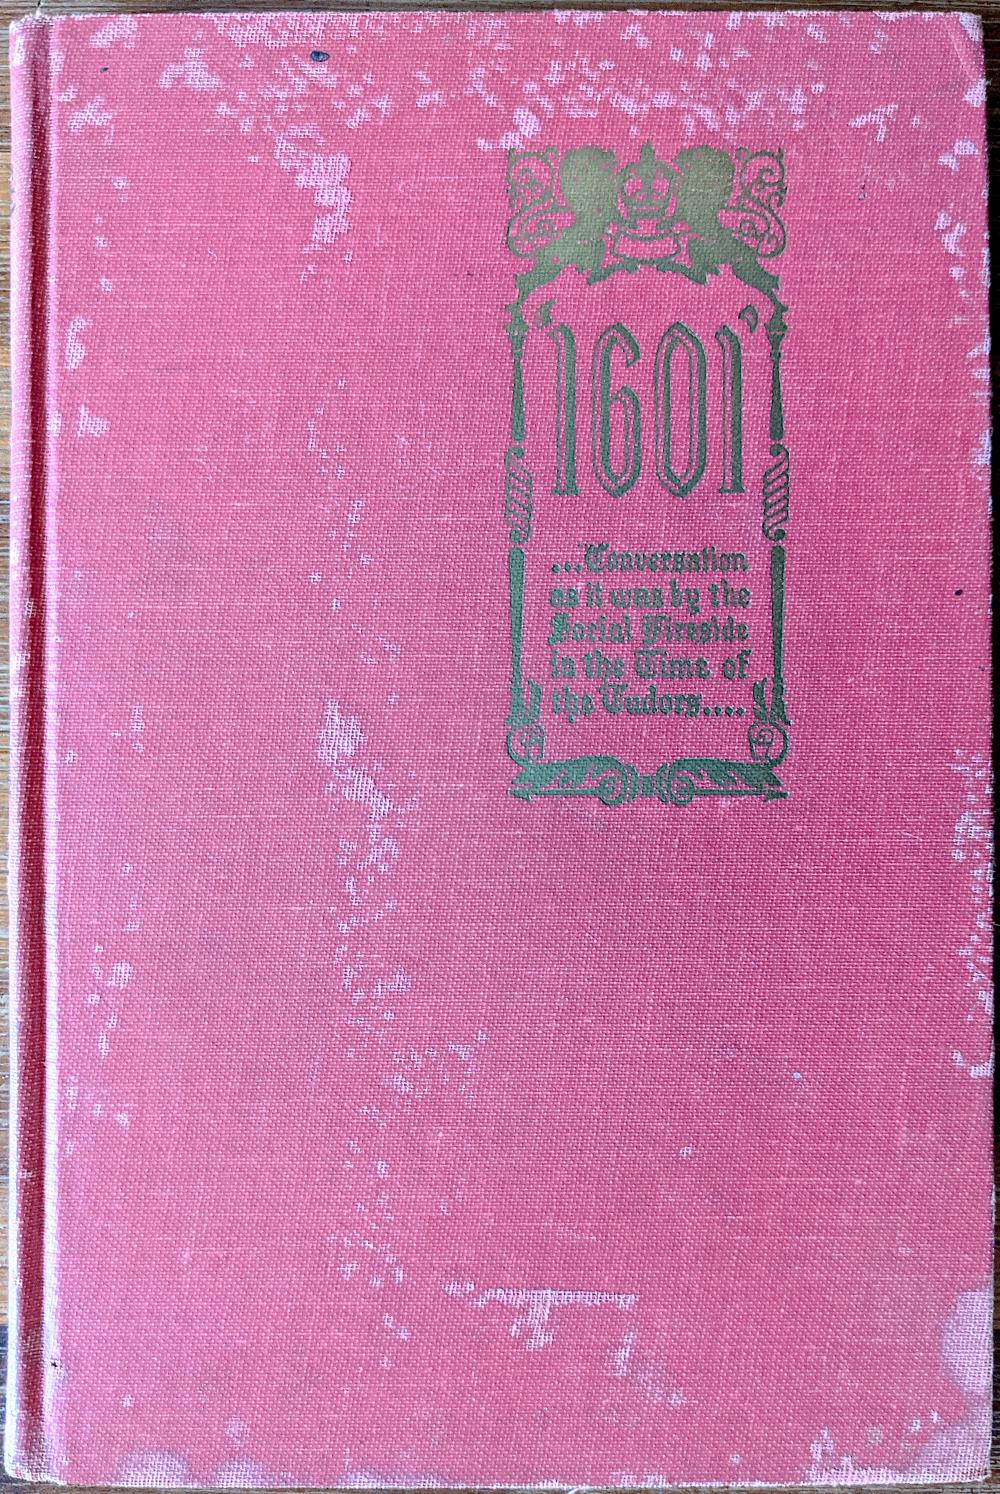 Privately Printed Edition of MARK Twain's 1601